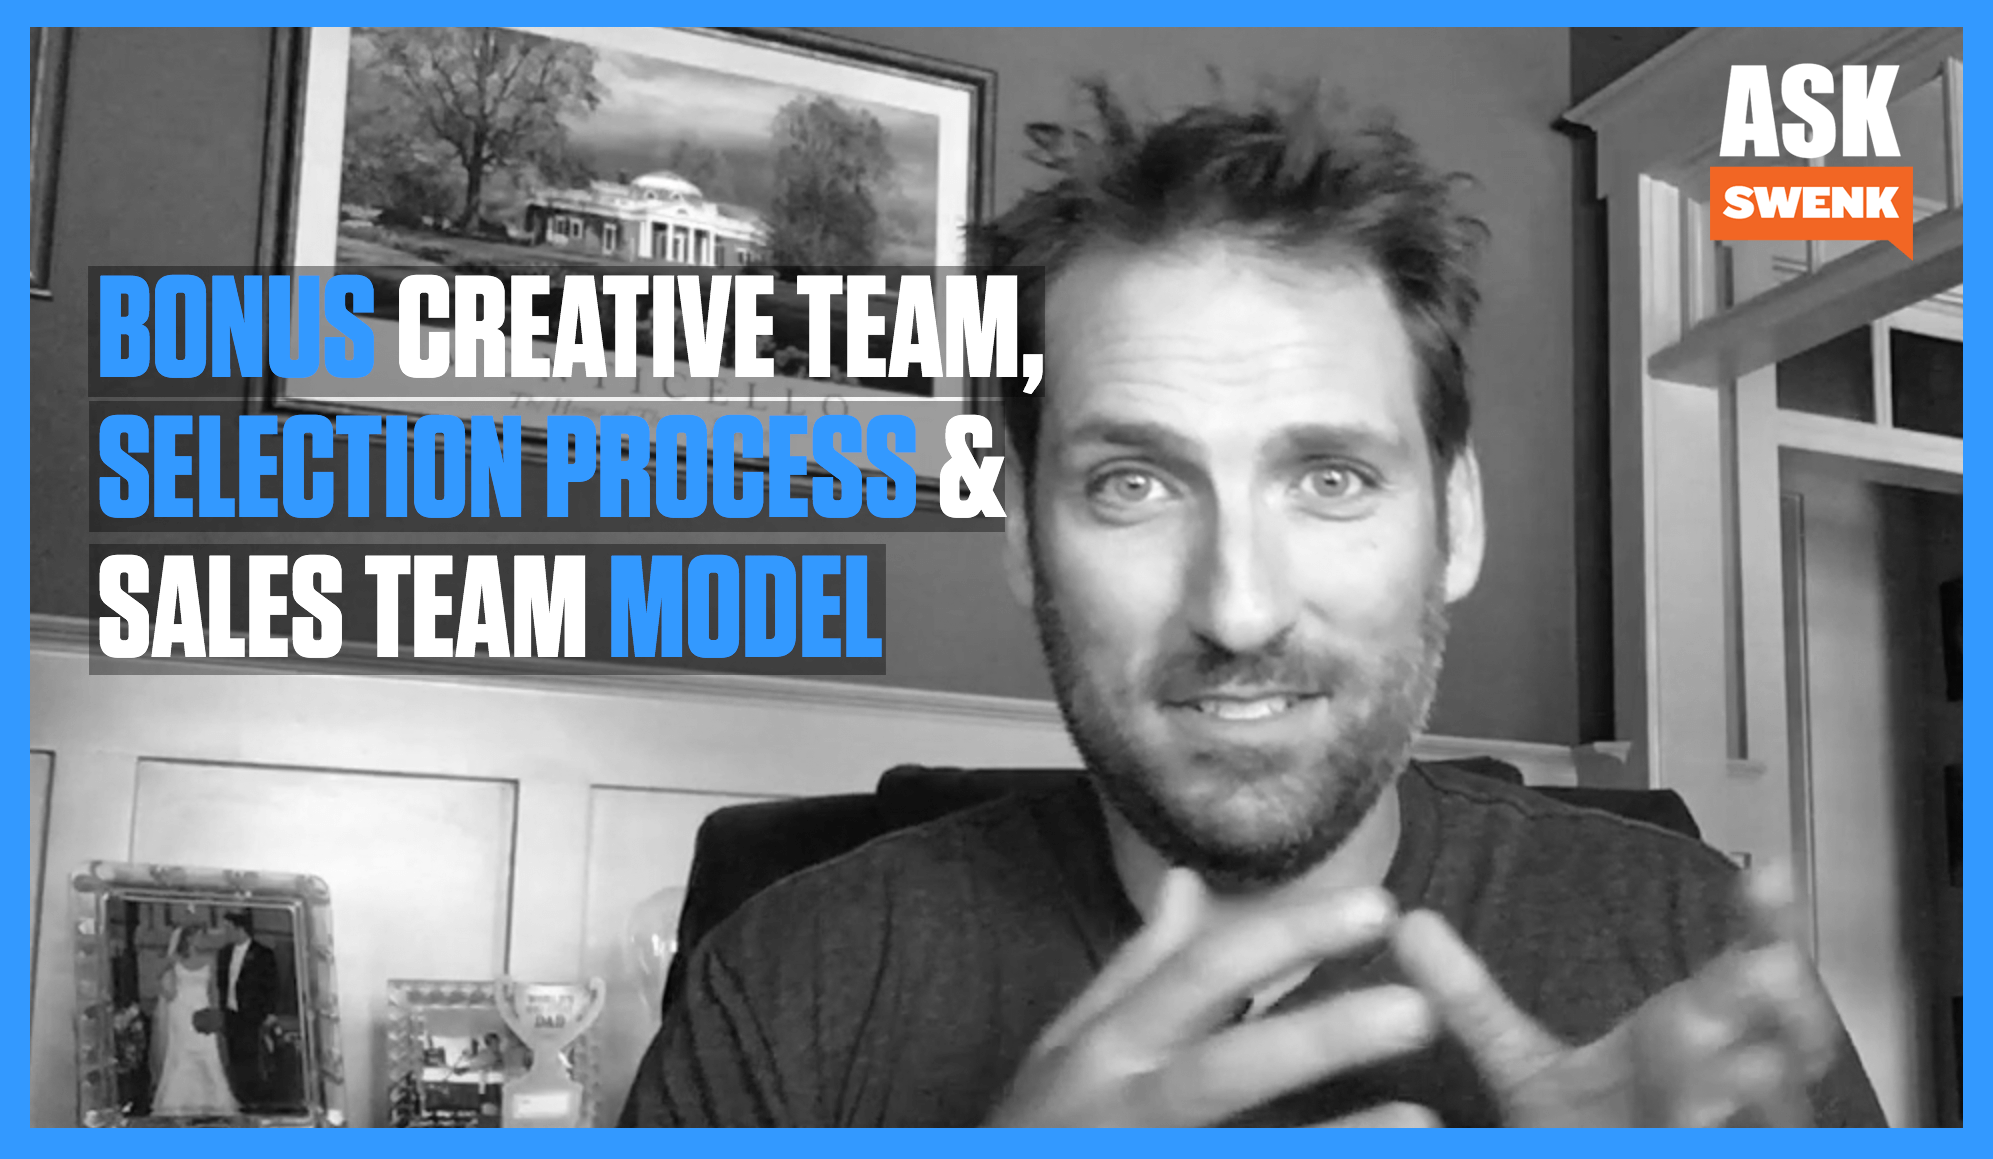 How to BONUS Creative Team, Sales Processes & Sales Team Model